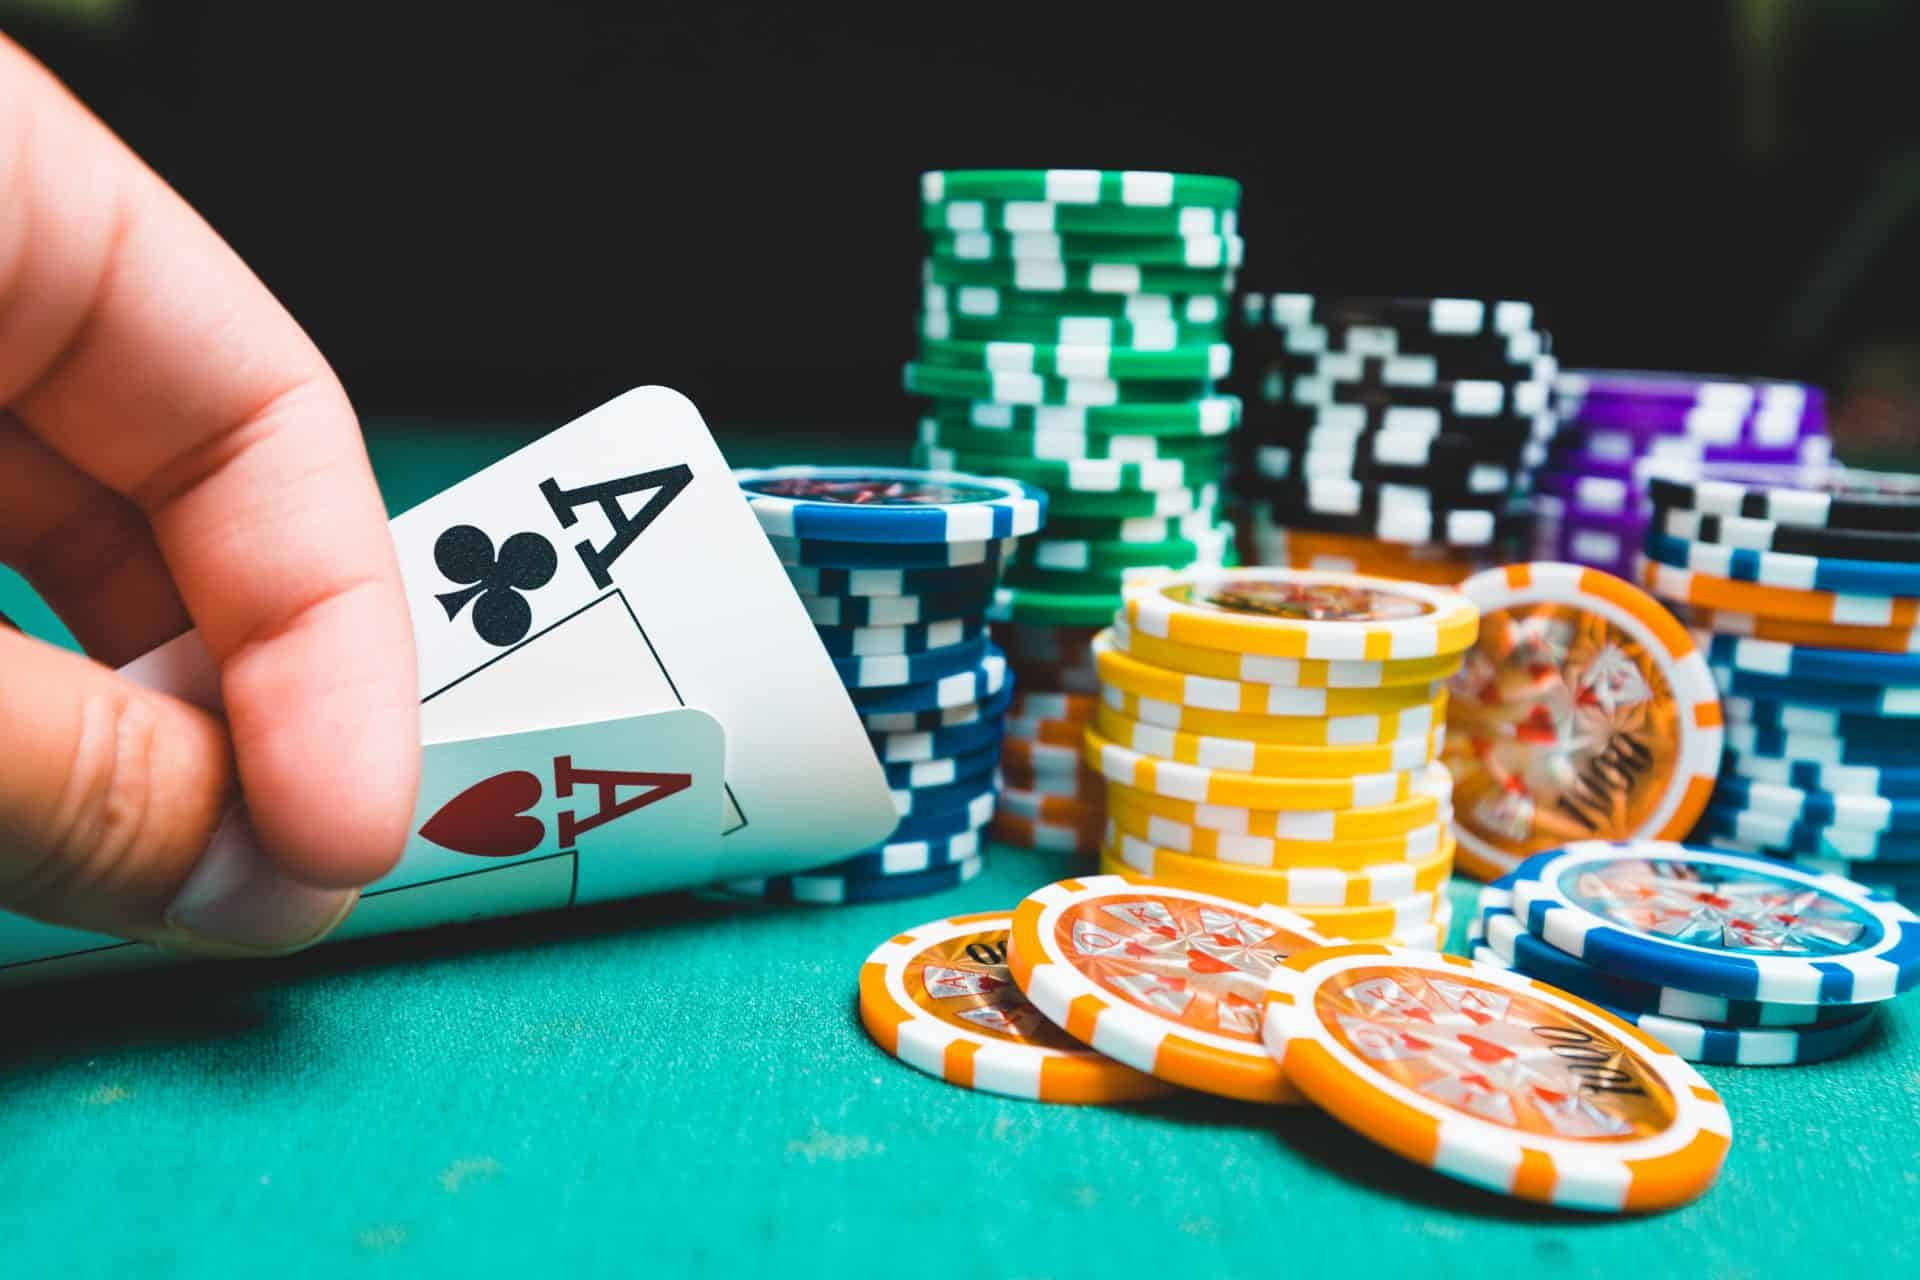 Winning Roulette Winnings Online Problems And Solutions